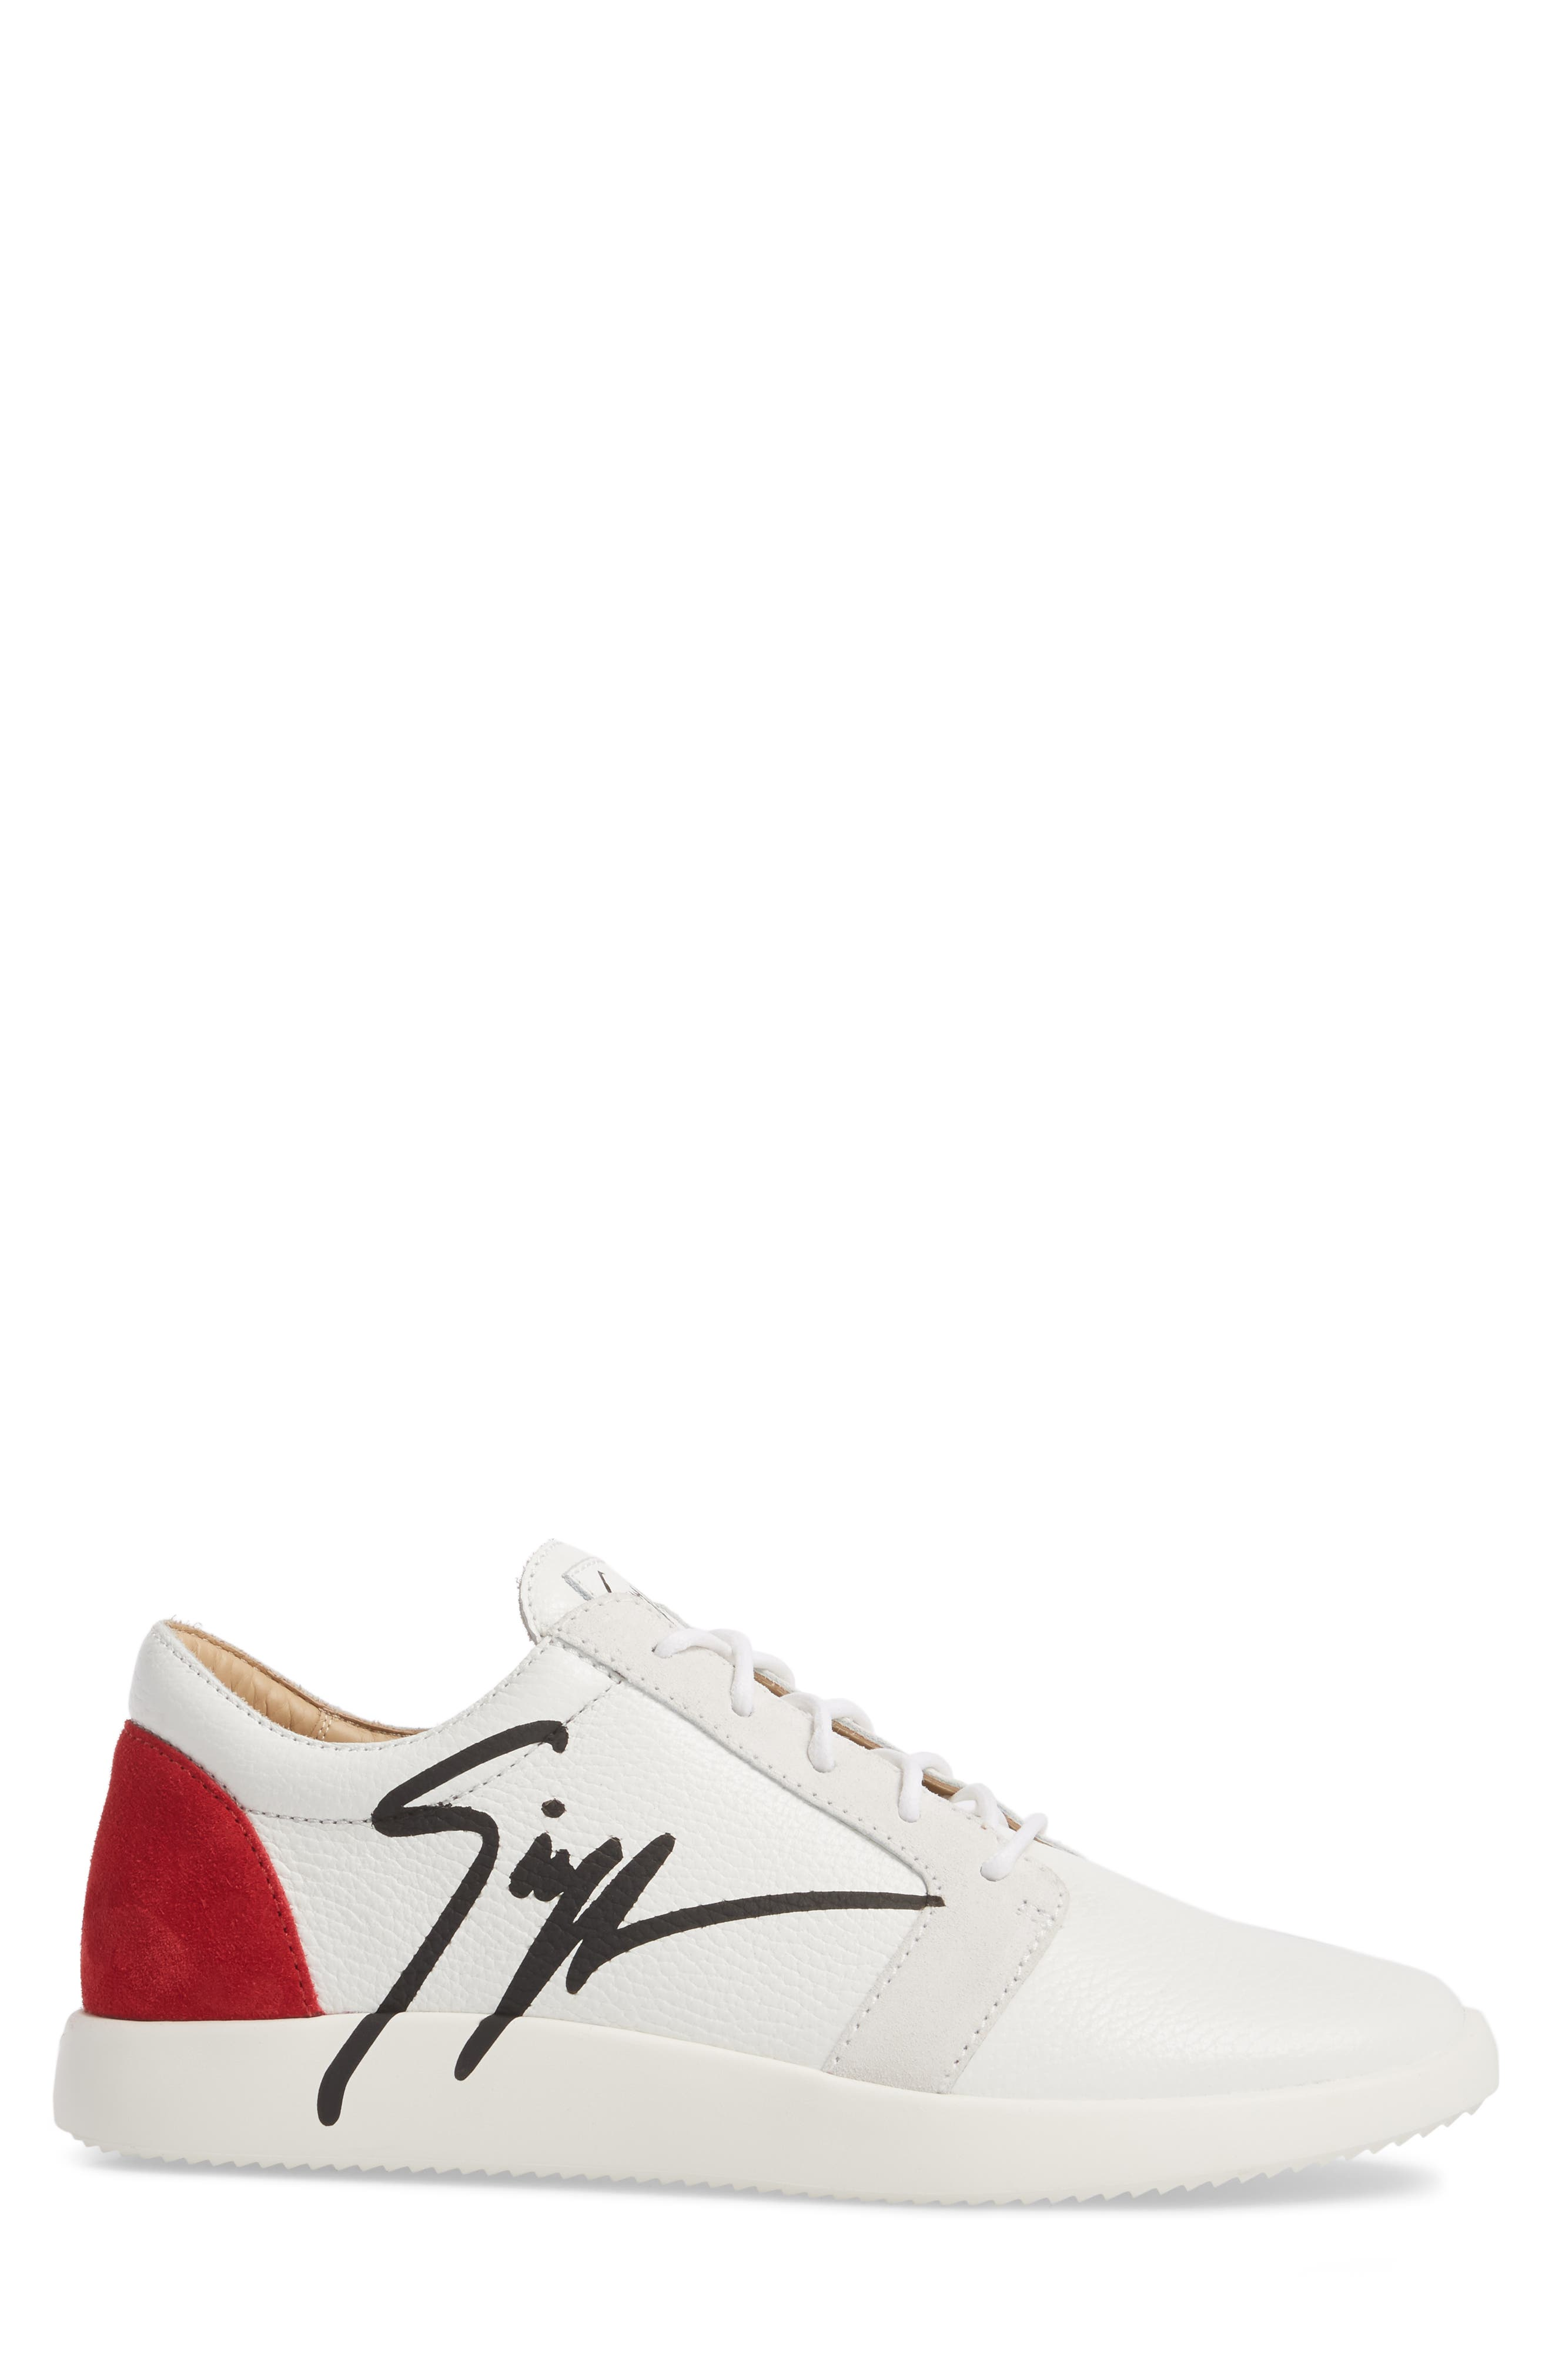 Signature Sneaker,                             Alternate thumbnail 3, color,                             White W/ Red Counter